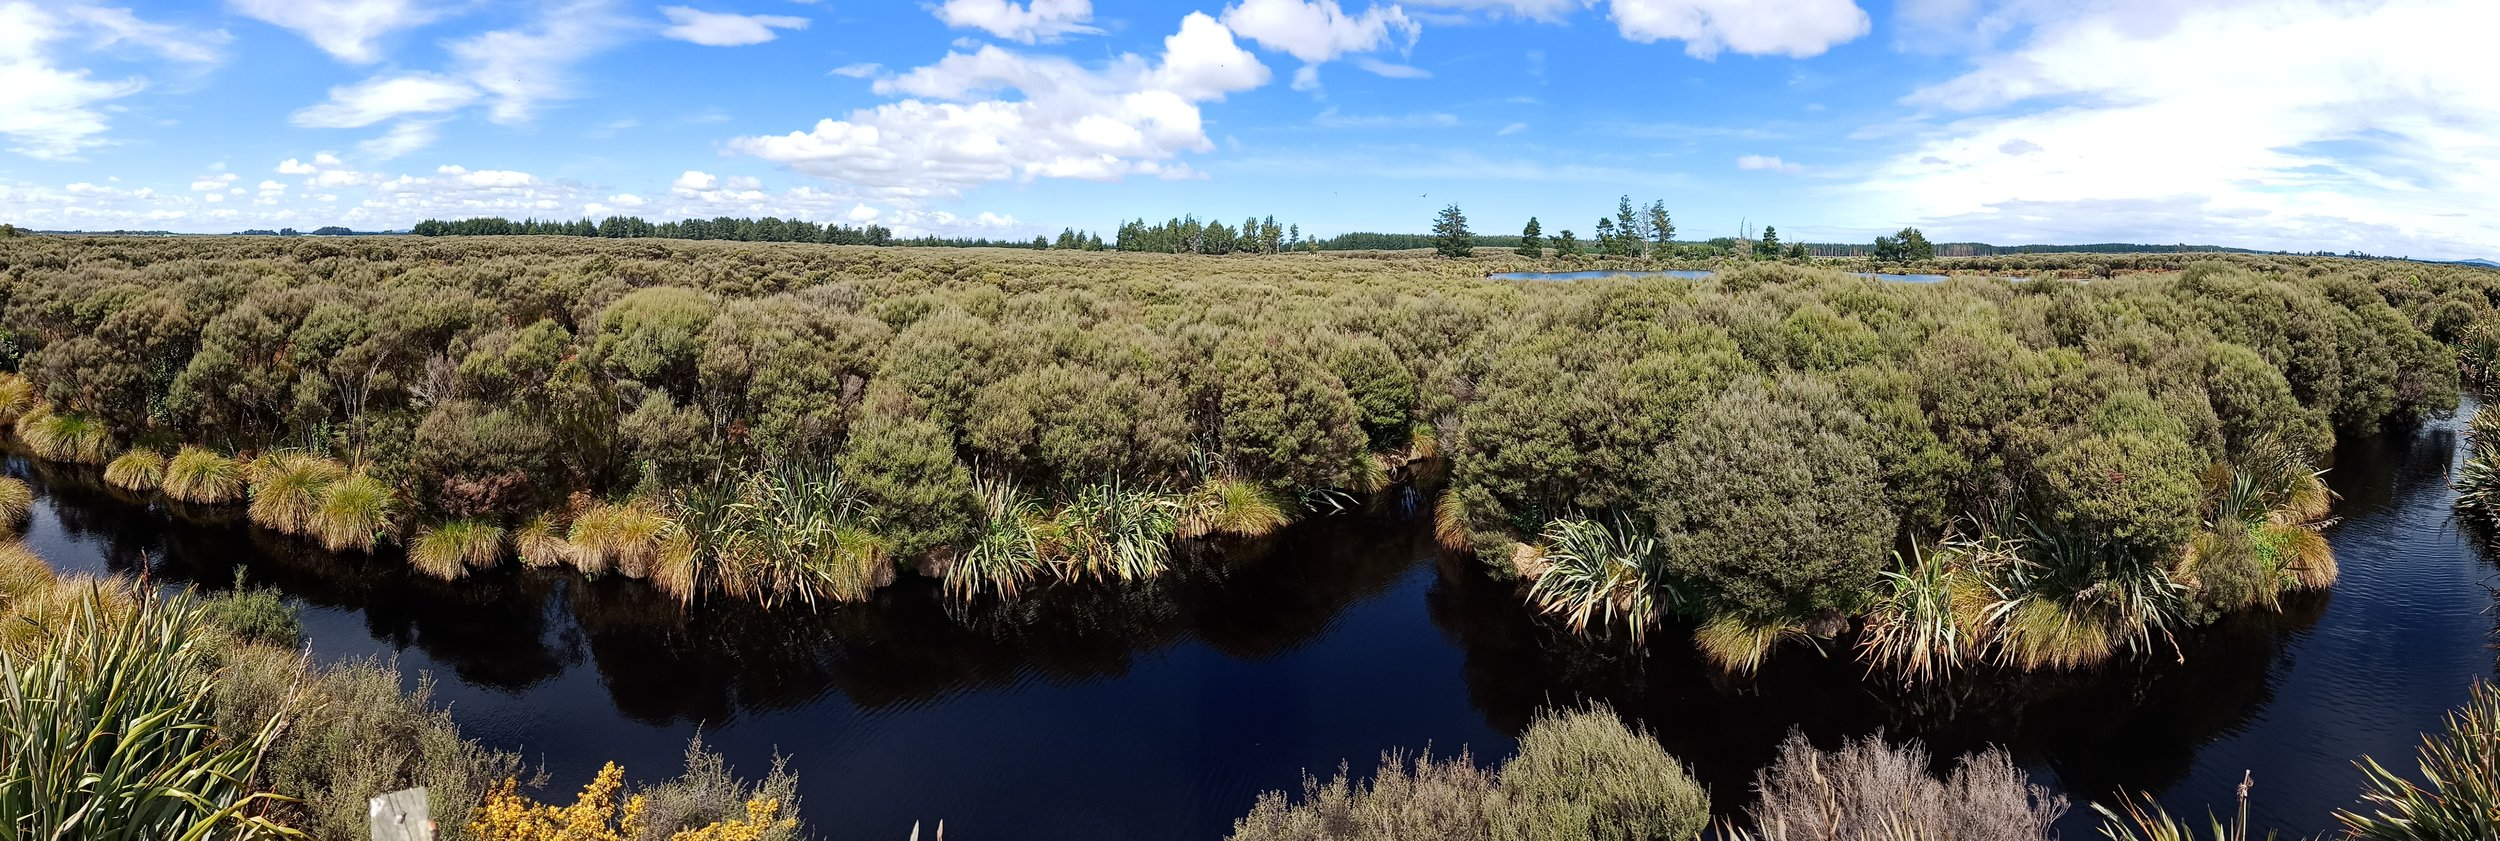 Restoring wetlands through reverse engineering. Here a drainage ditch has been dammed to allow water to reclaim the wetlands and associated plants — tussock, flax and a wide variety of native trees. photo credit: the most amazing marion familton